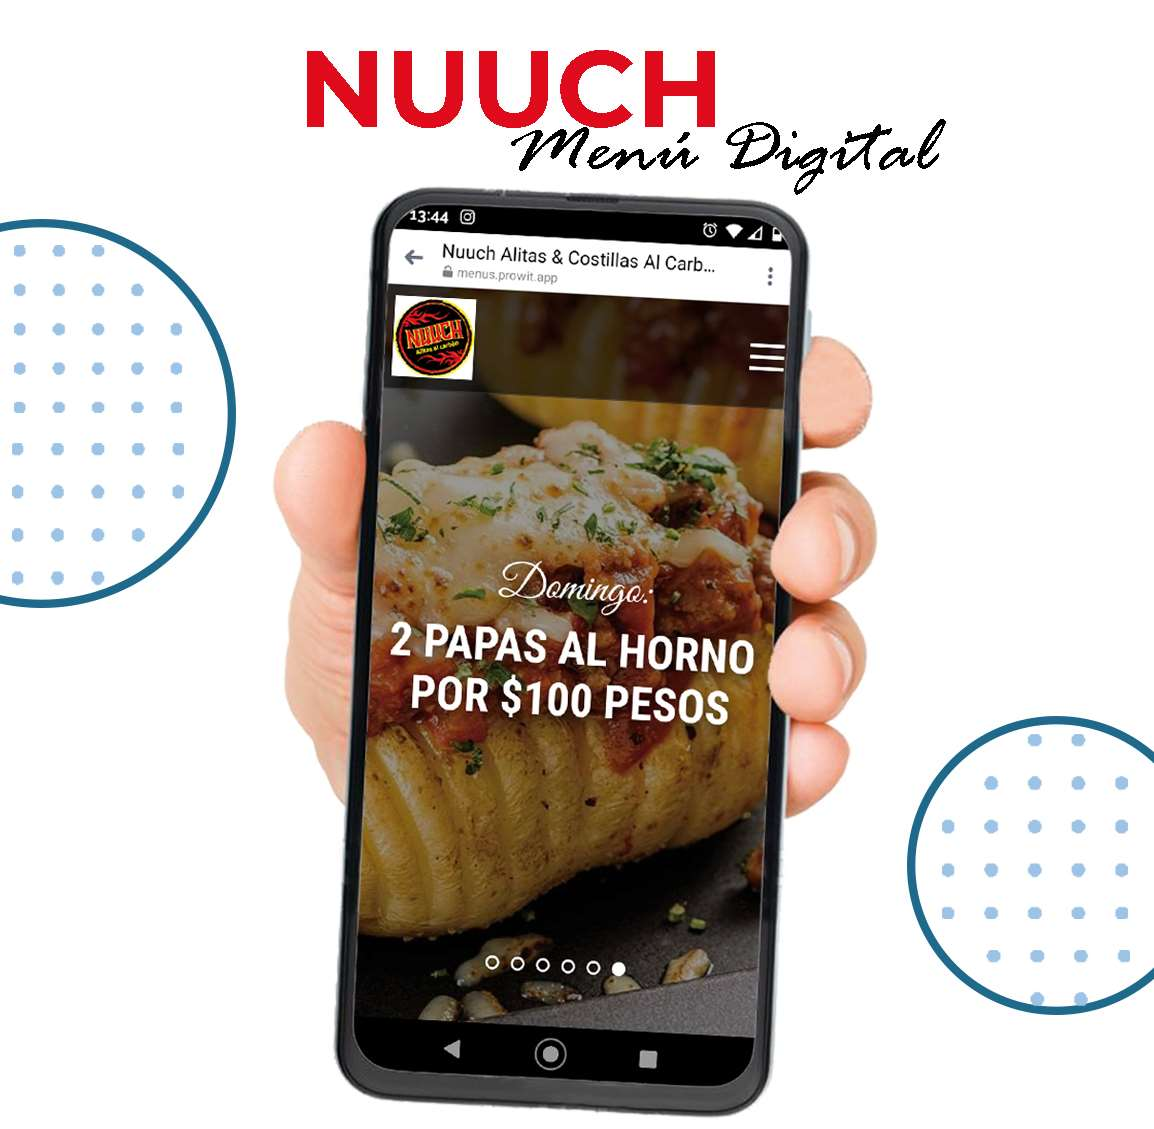 Nuuch